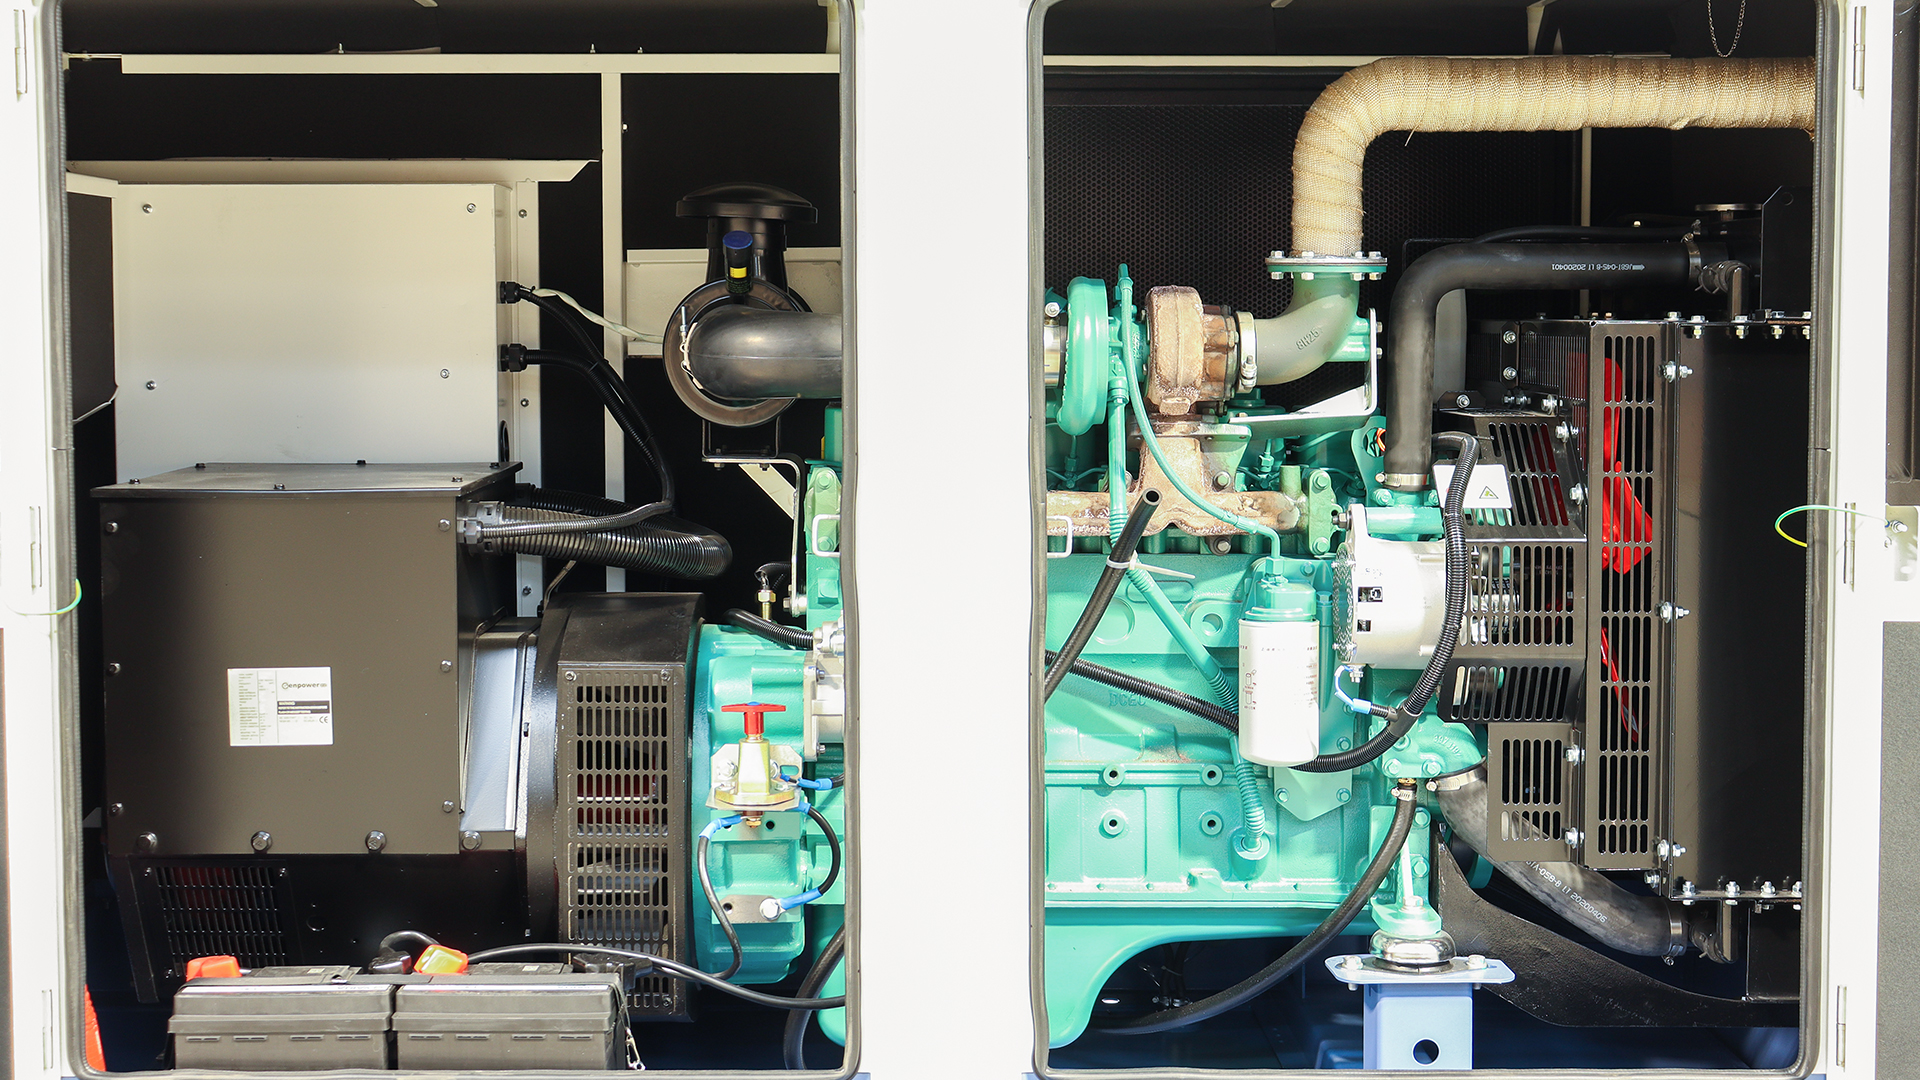 The inside of the generator rear, showing the engine